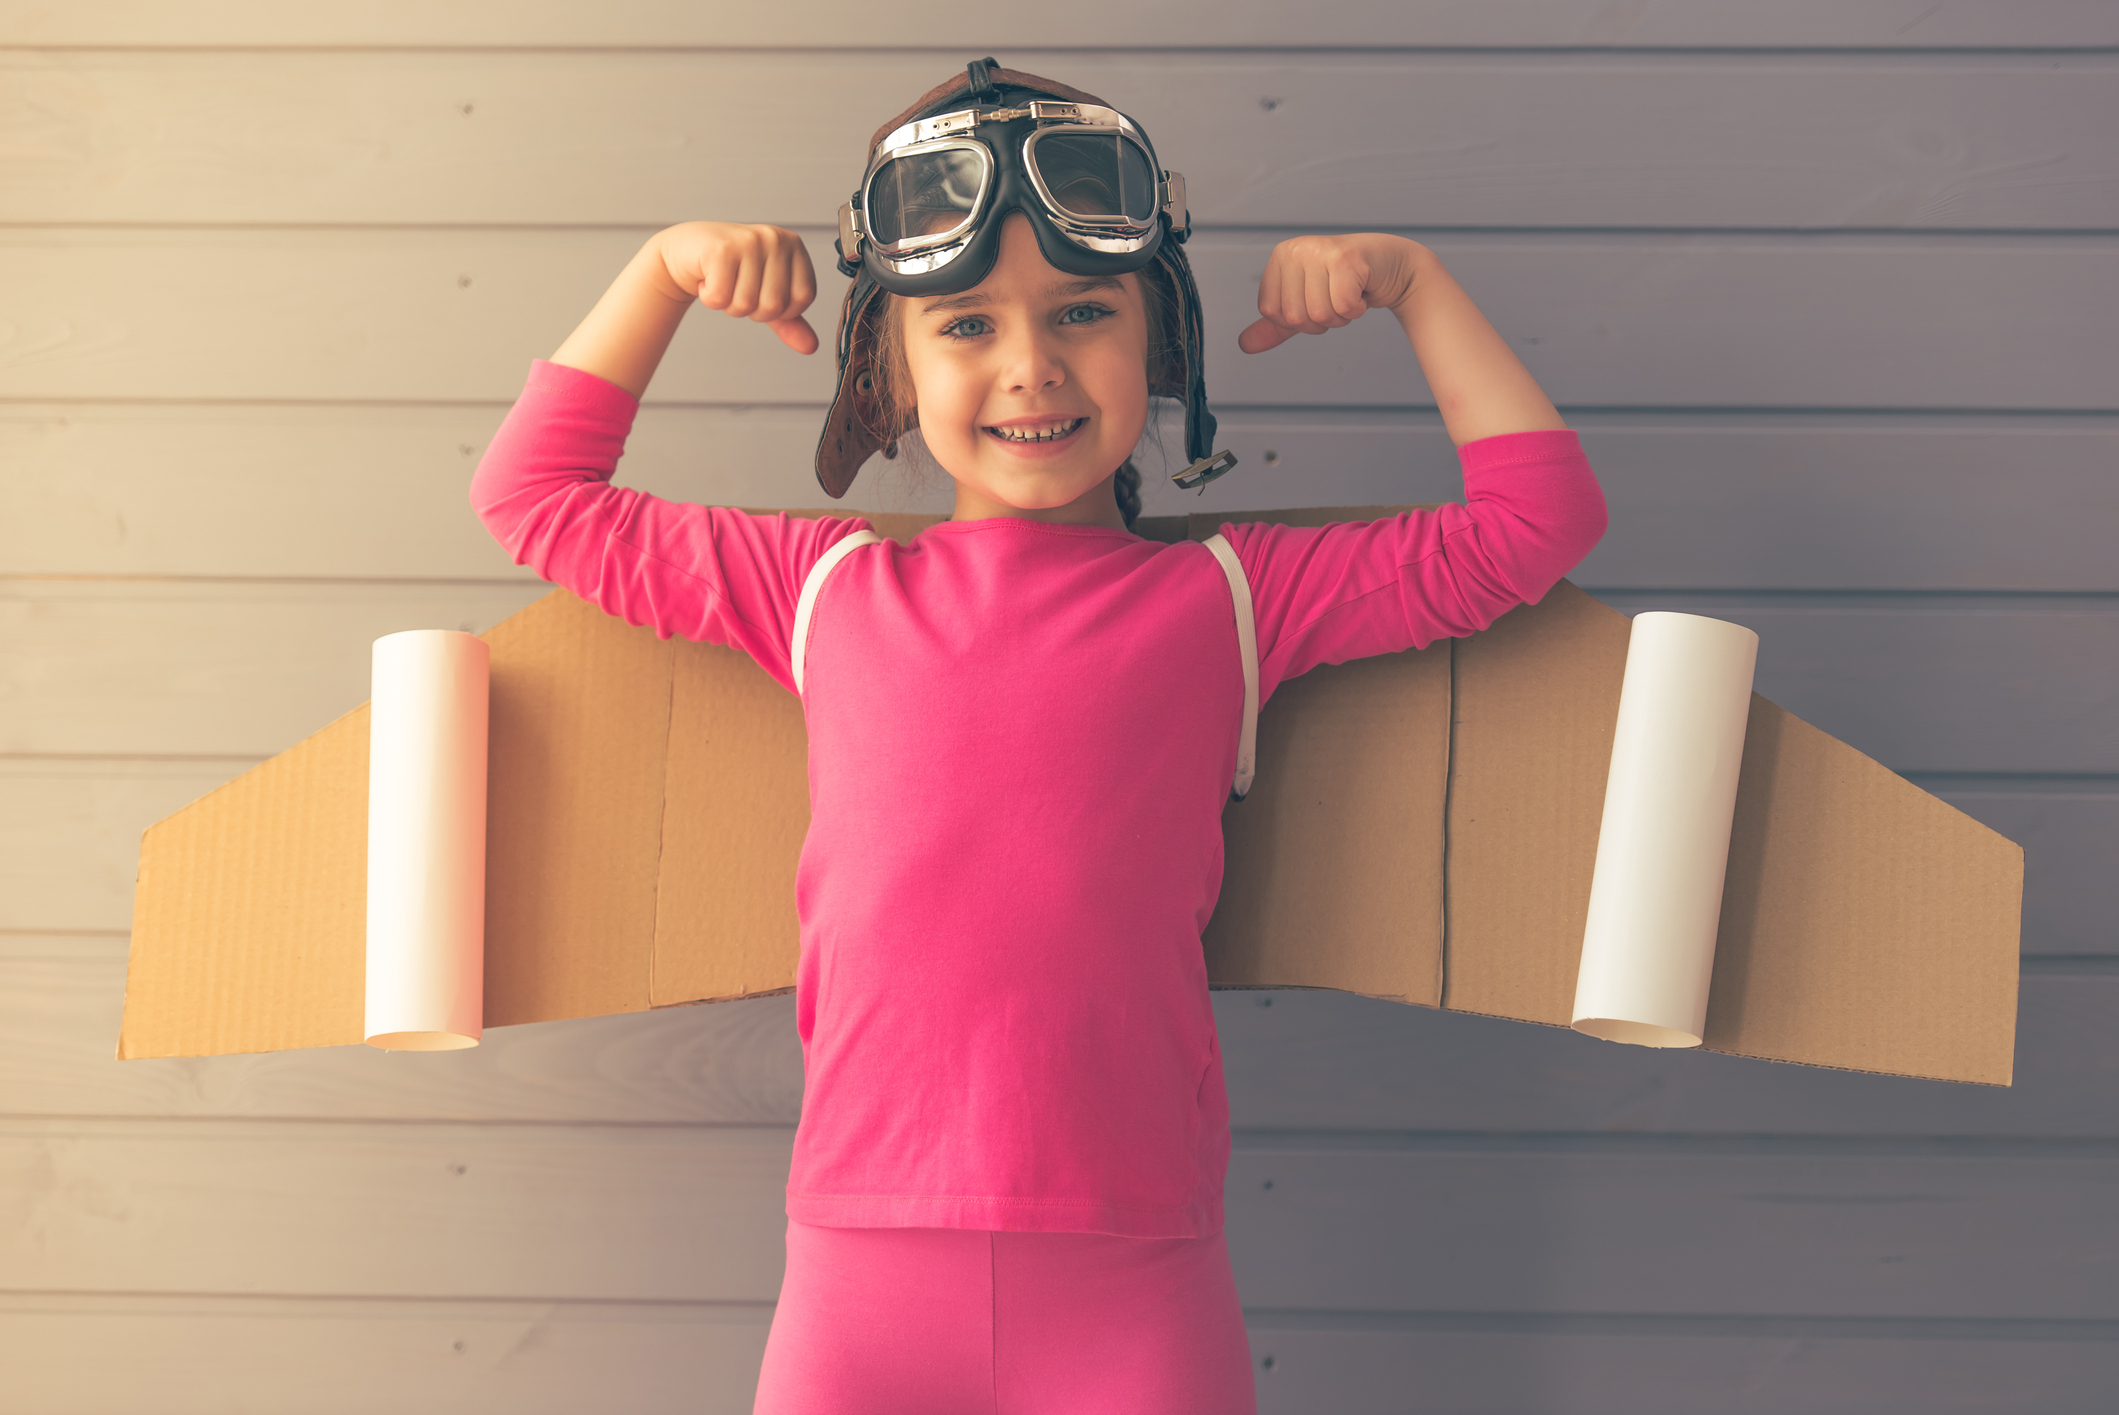 Cute little girl dressed like a pilot with toy wings is showing her muscles, smiling and looking at camera, against gray wall